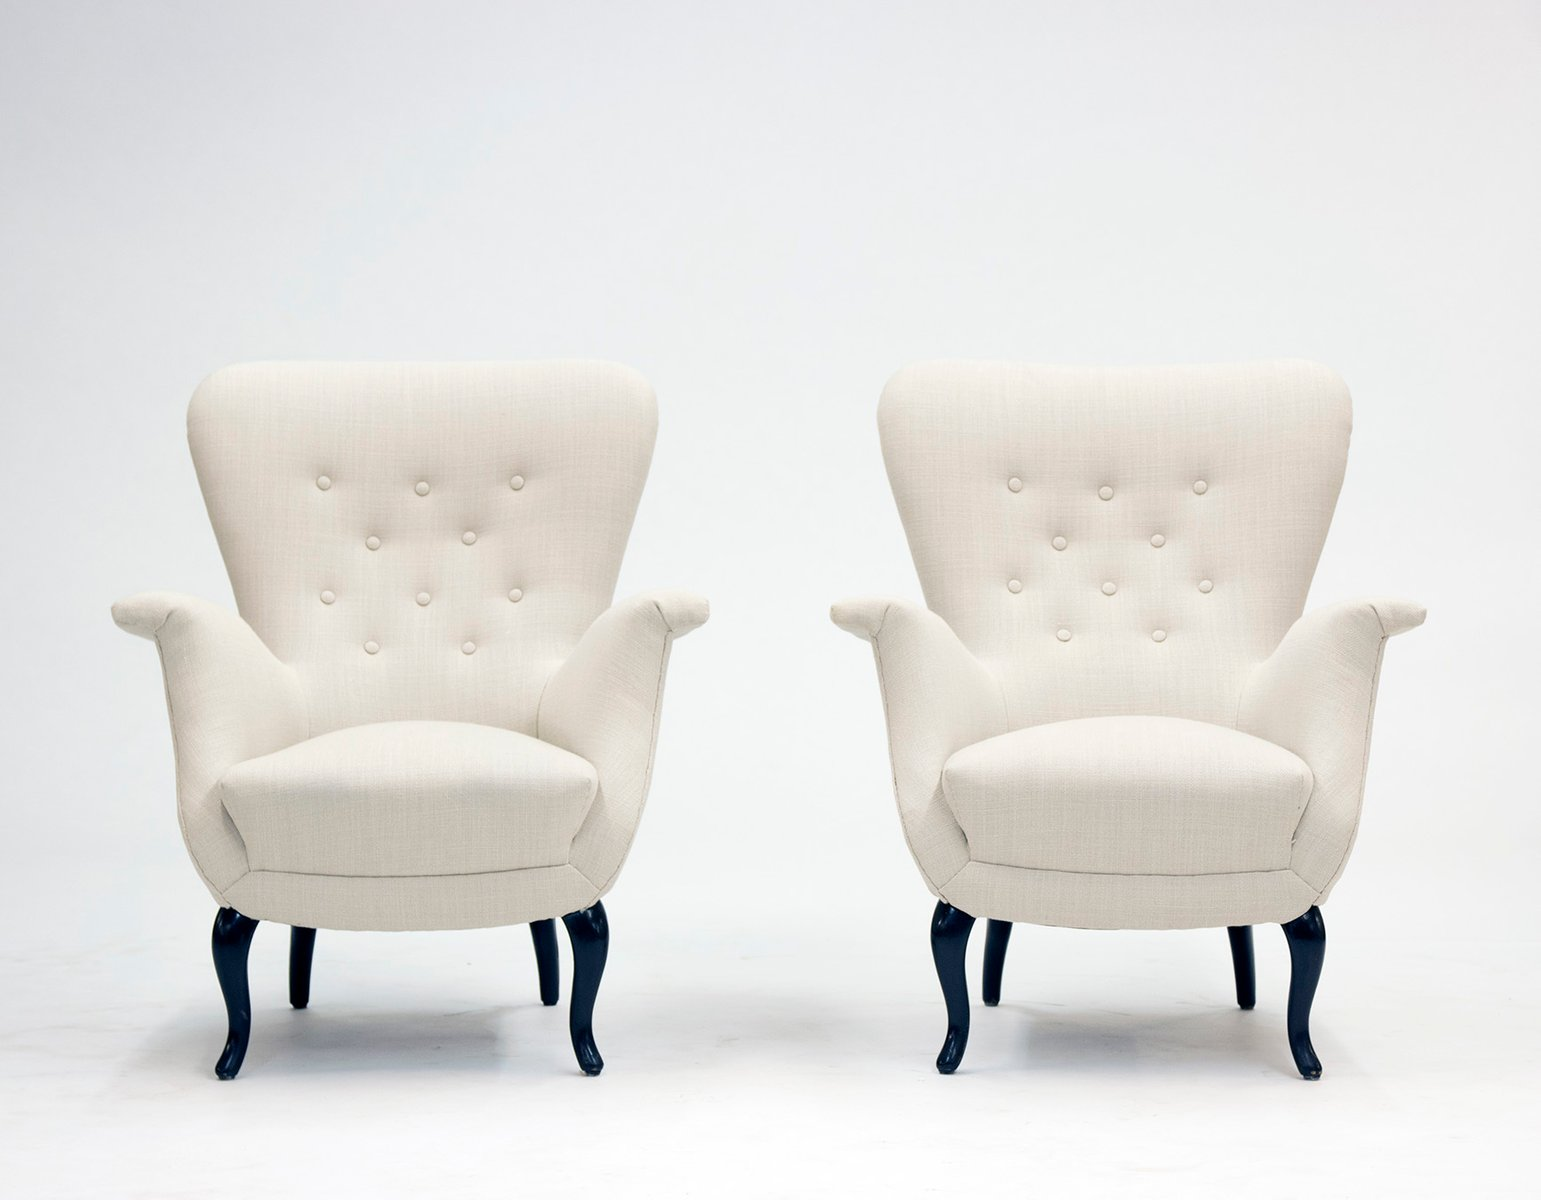 White Lounge Chairs White Lounge Chairs From S M Wincrantz 1950s Set Of 2